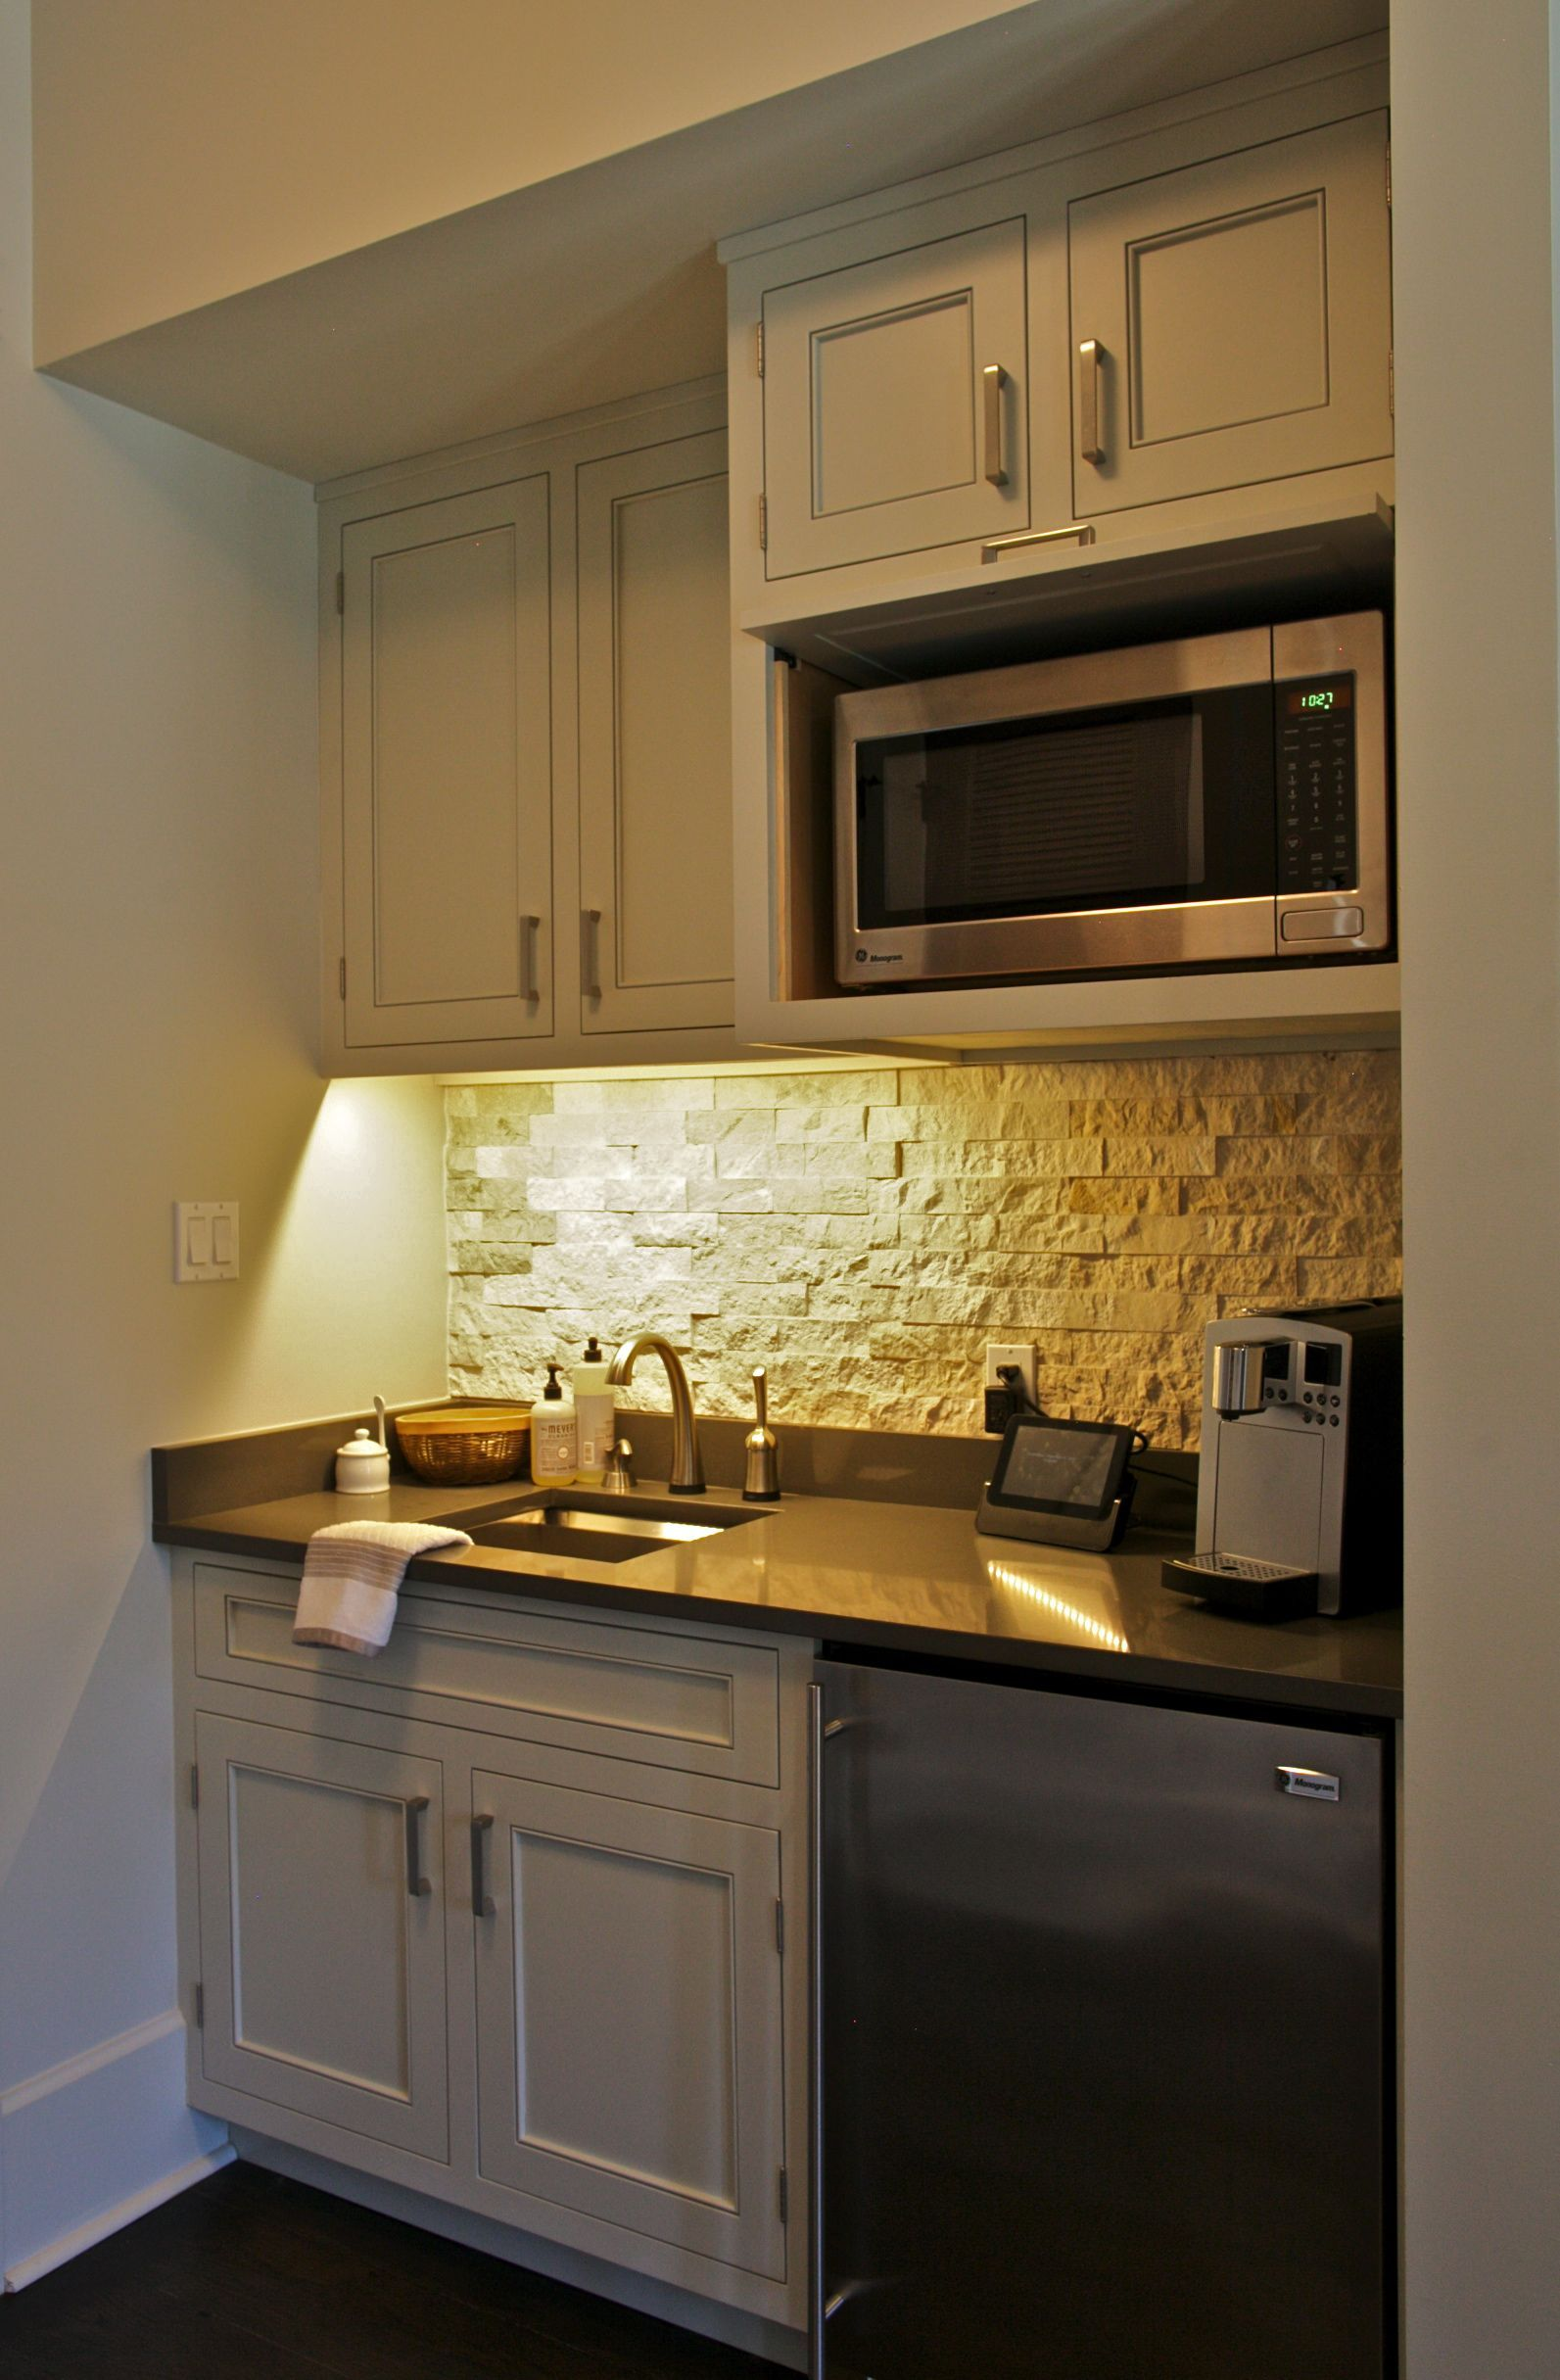 This coffee barkitchenette sits in a Master Bedroom for early